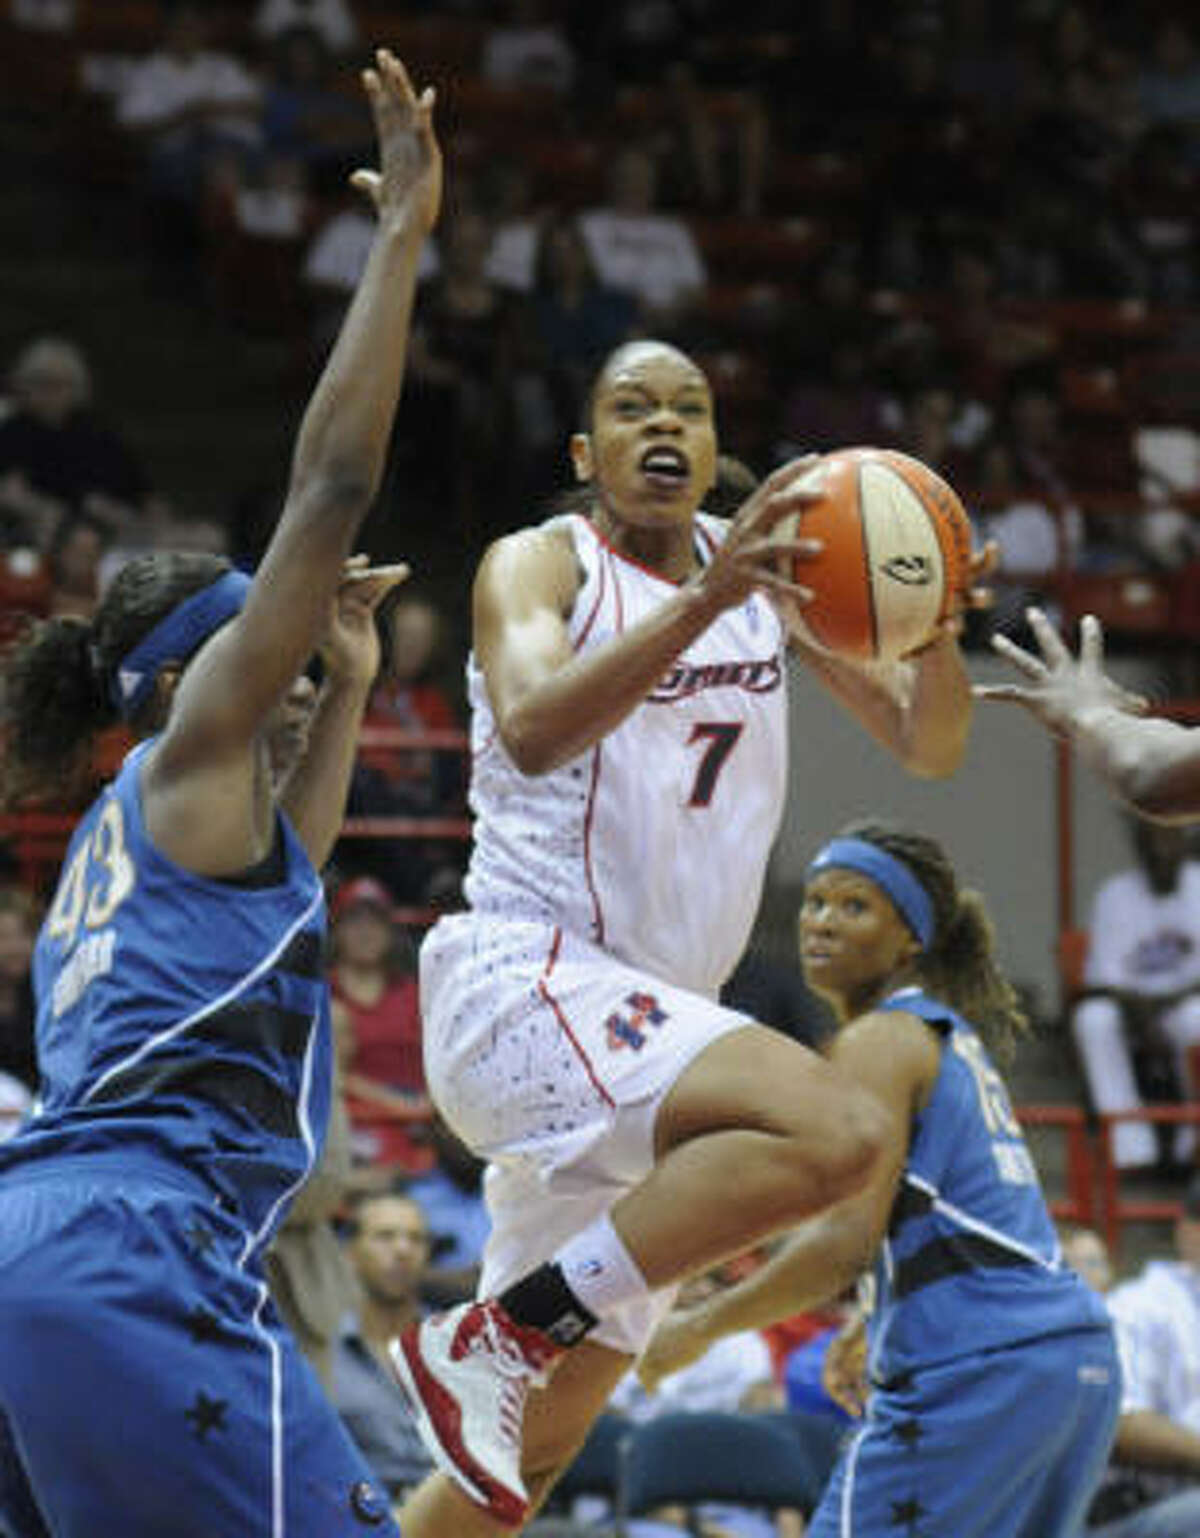 Tina Thompson The forward signed with the Los Angeles Sparks. While she had played 11 years in Houston and keeps a home in the area, Thompson grew up in Los Angeles and played college basketball at USC.